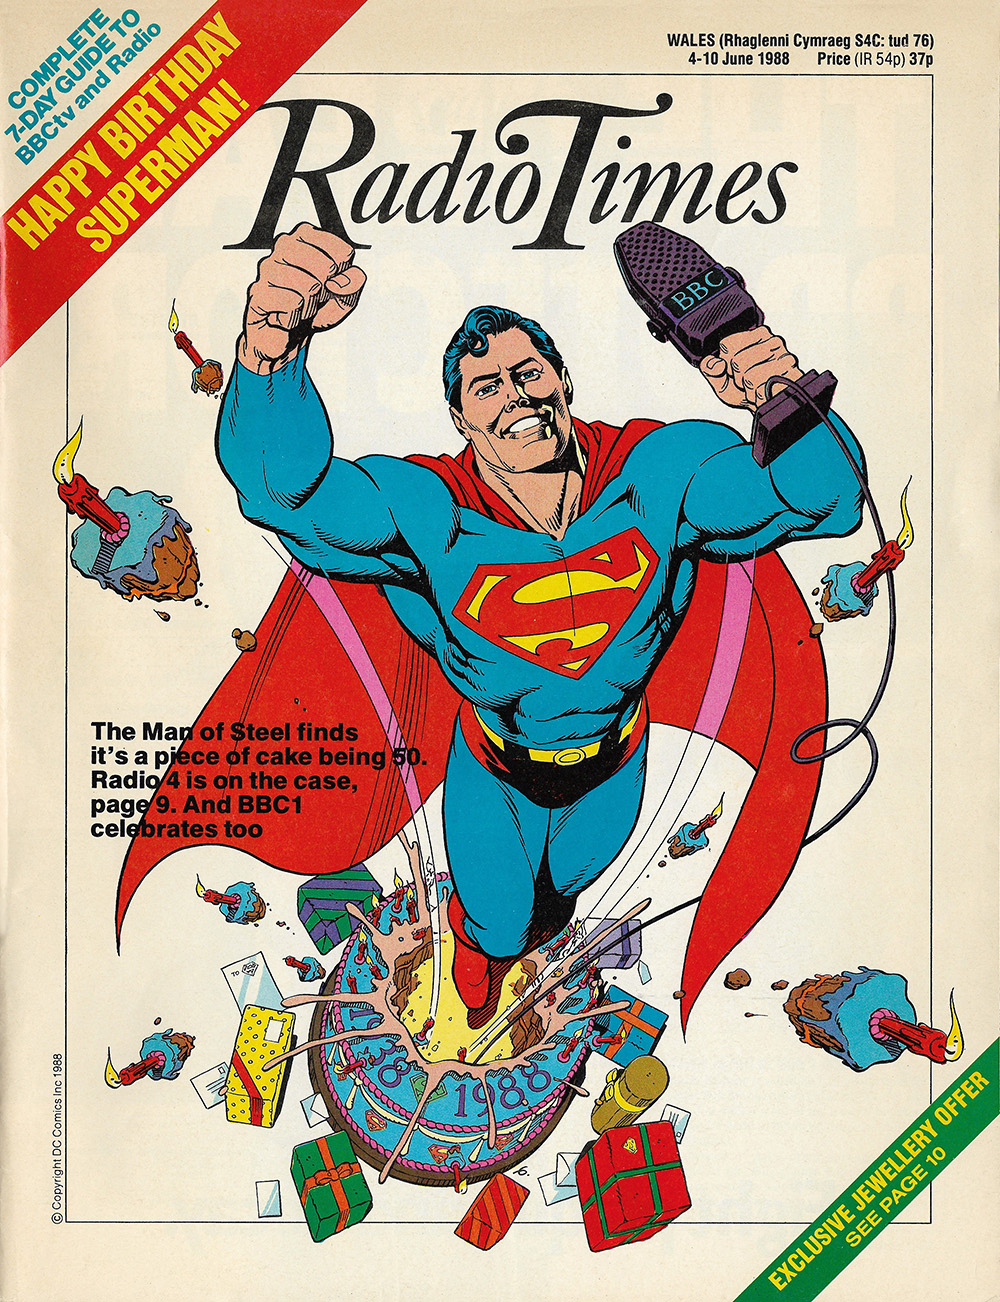 Superman Radio Times 1988 06 04 Cover s